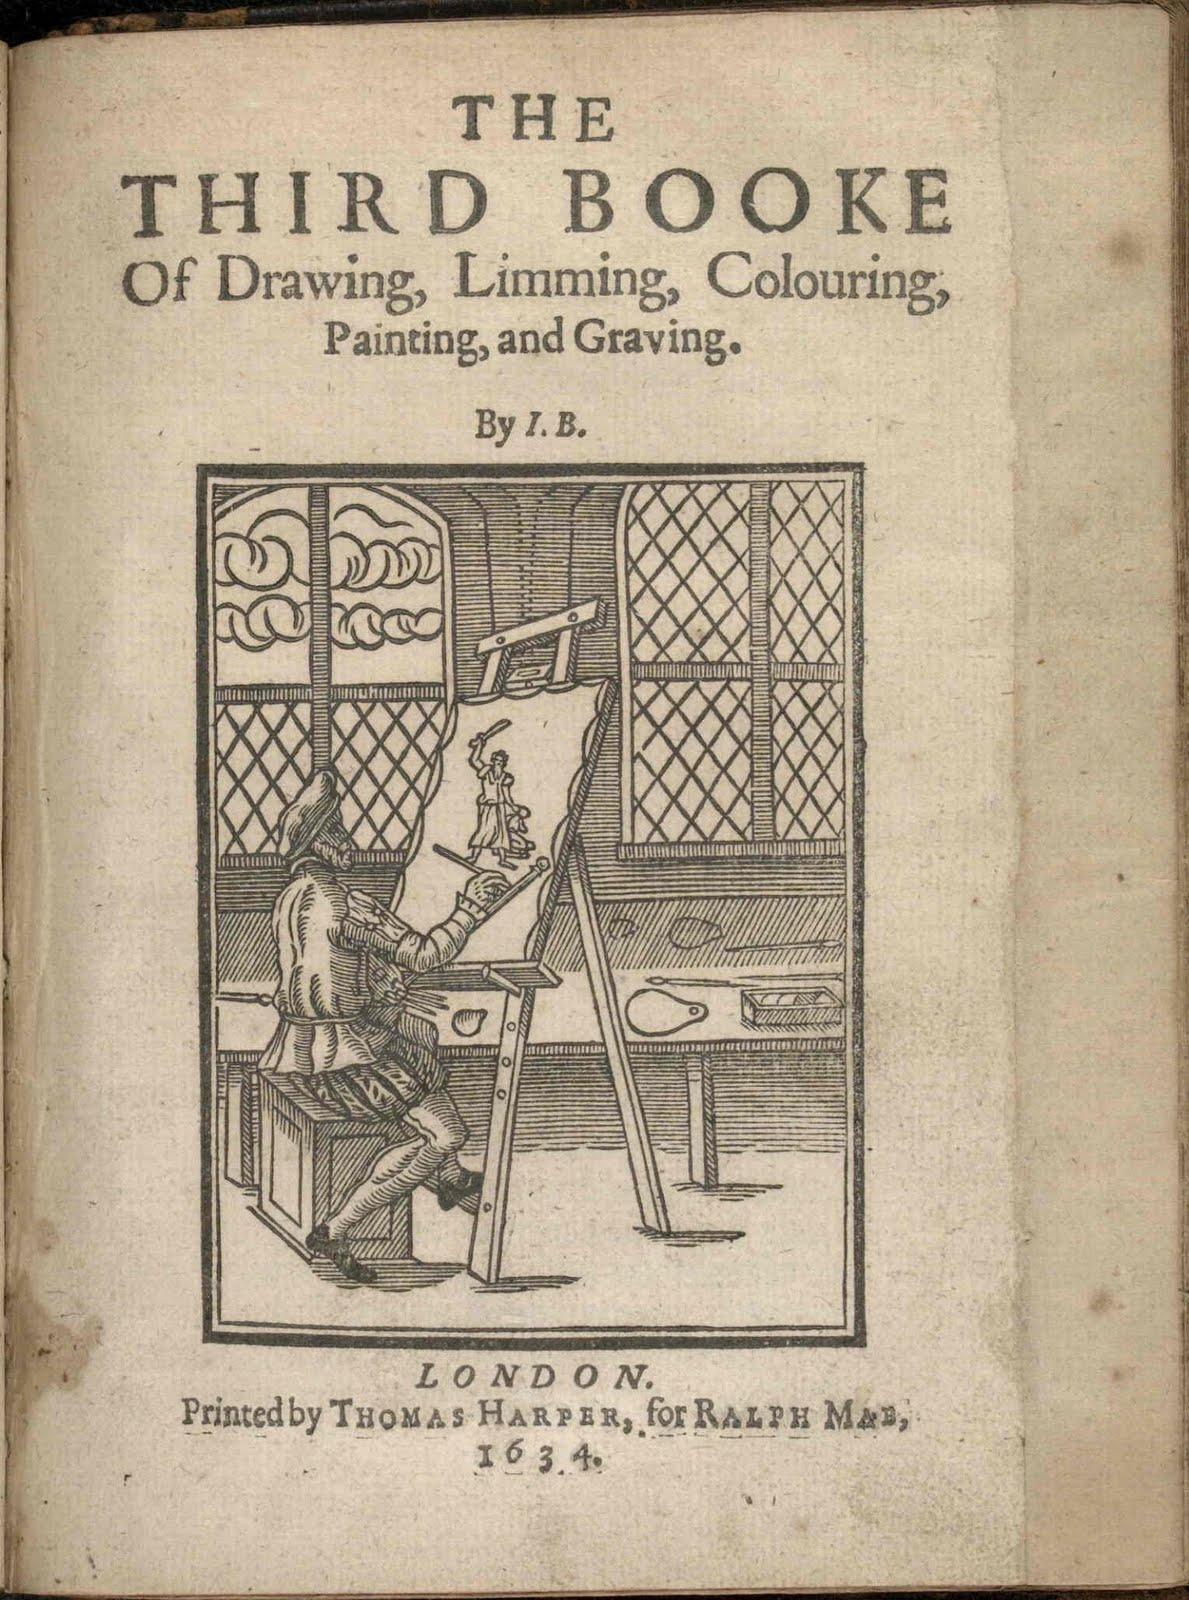 chapter 3 titlepage John Bate 1634 book